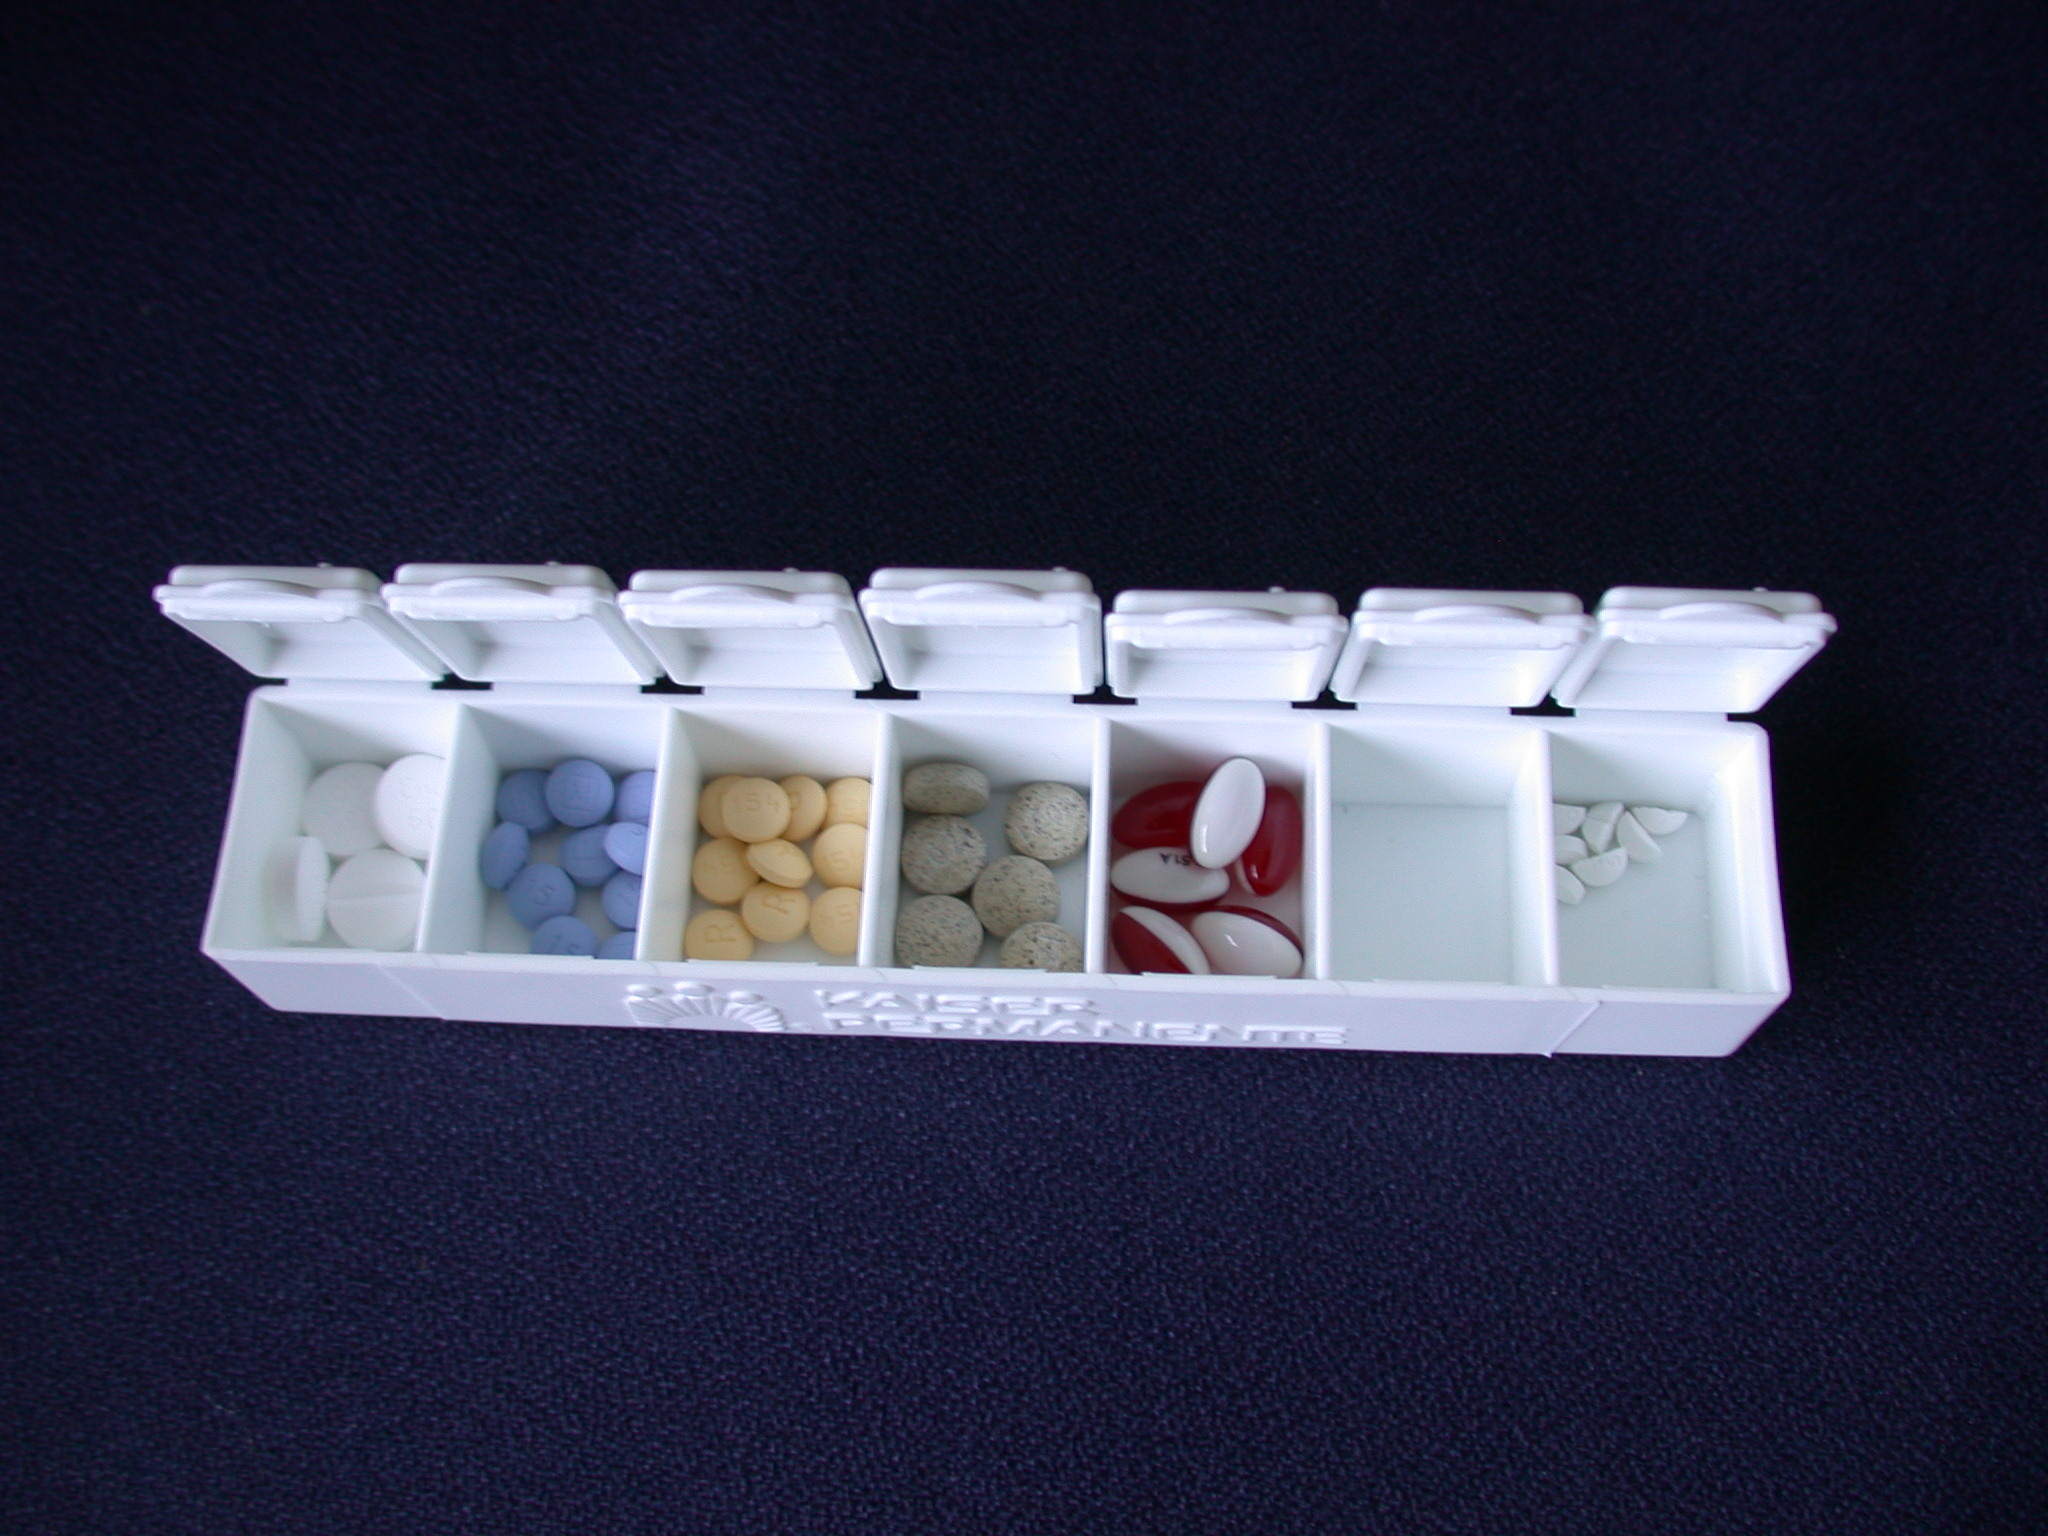 pill_box_with_pills